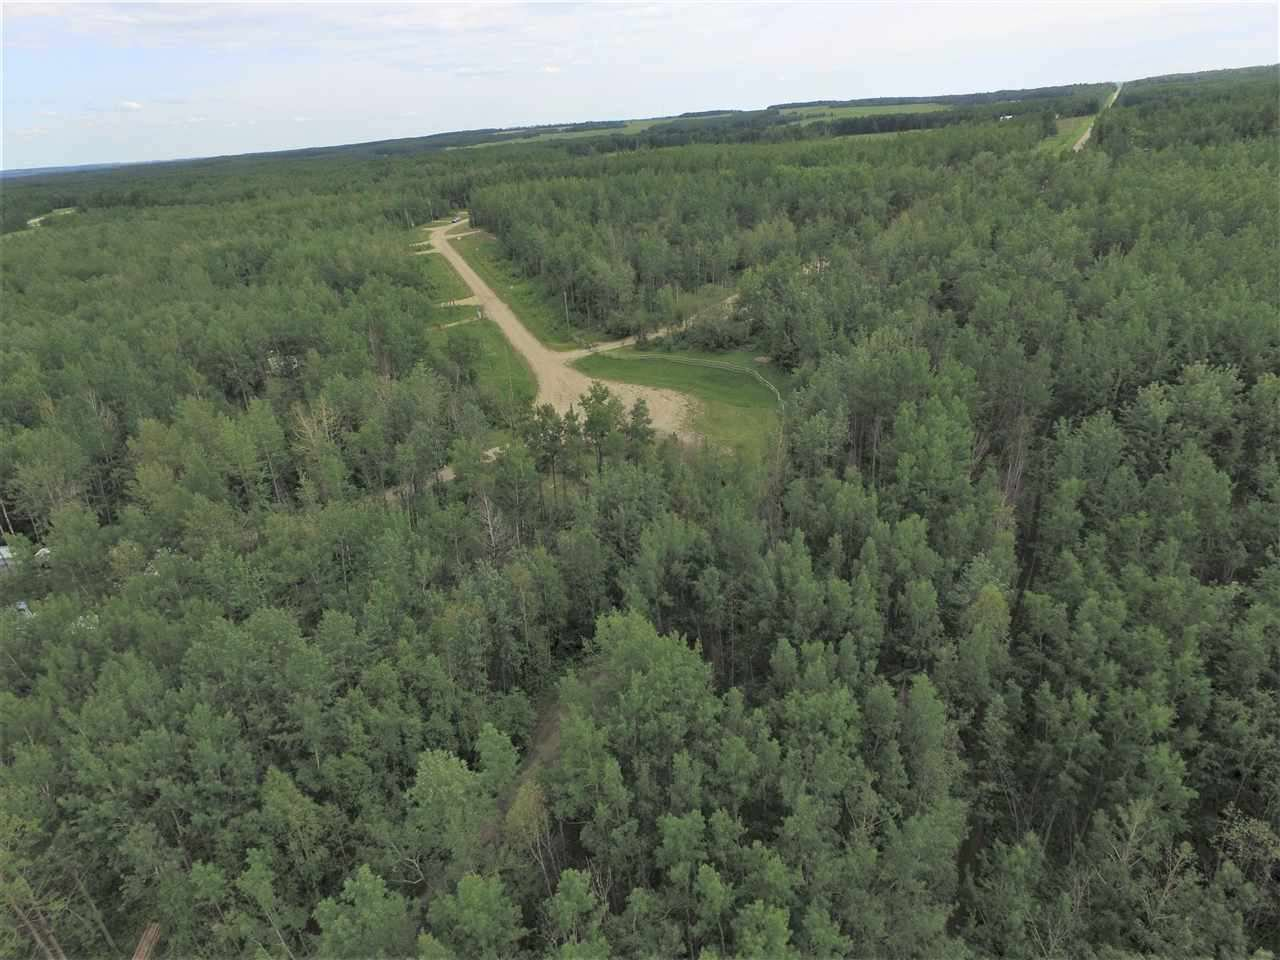 Photo 7: Photos: 11 13070 TWP RD 464: Rural Wetaskiwin County Rural Land/Vacant Lot for sale : MLS®# E4169948